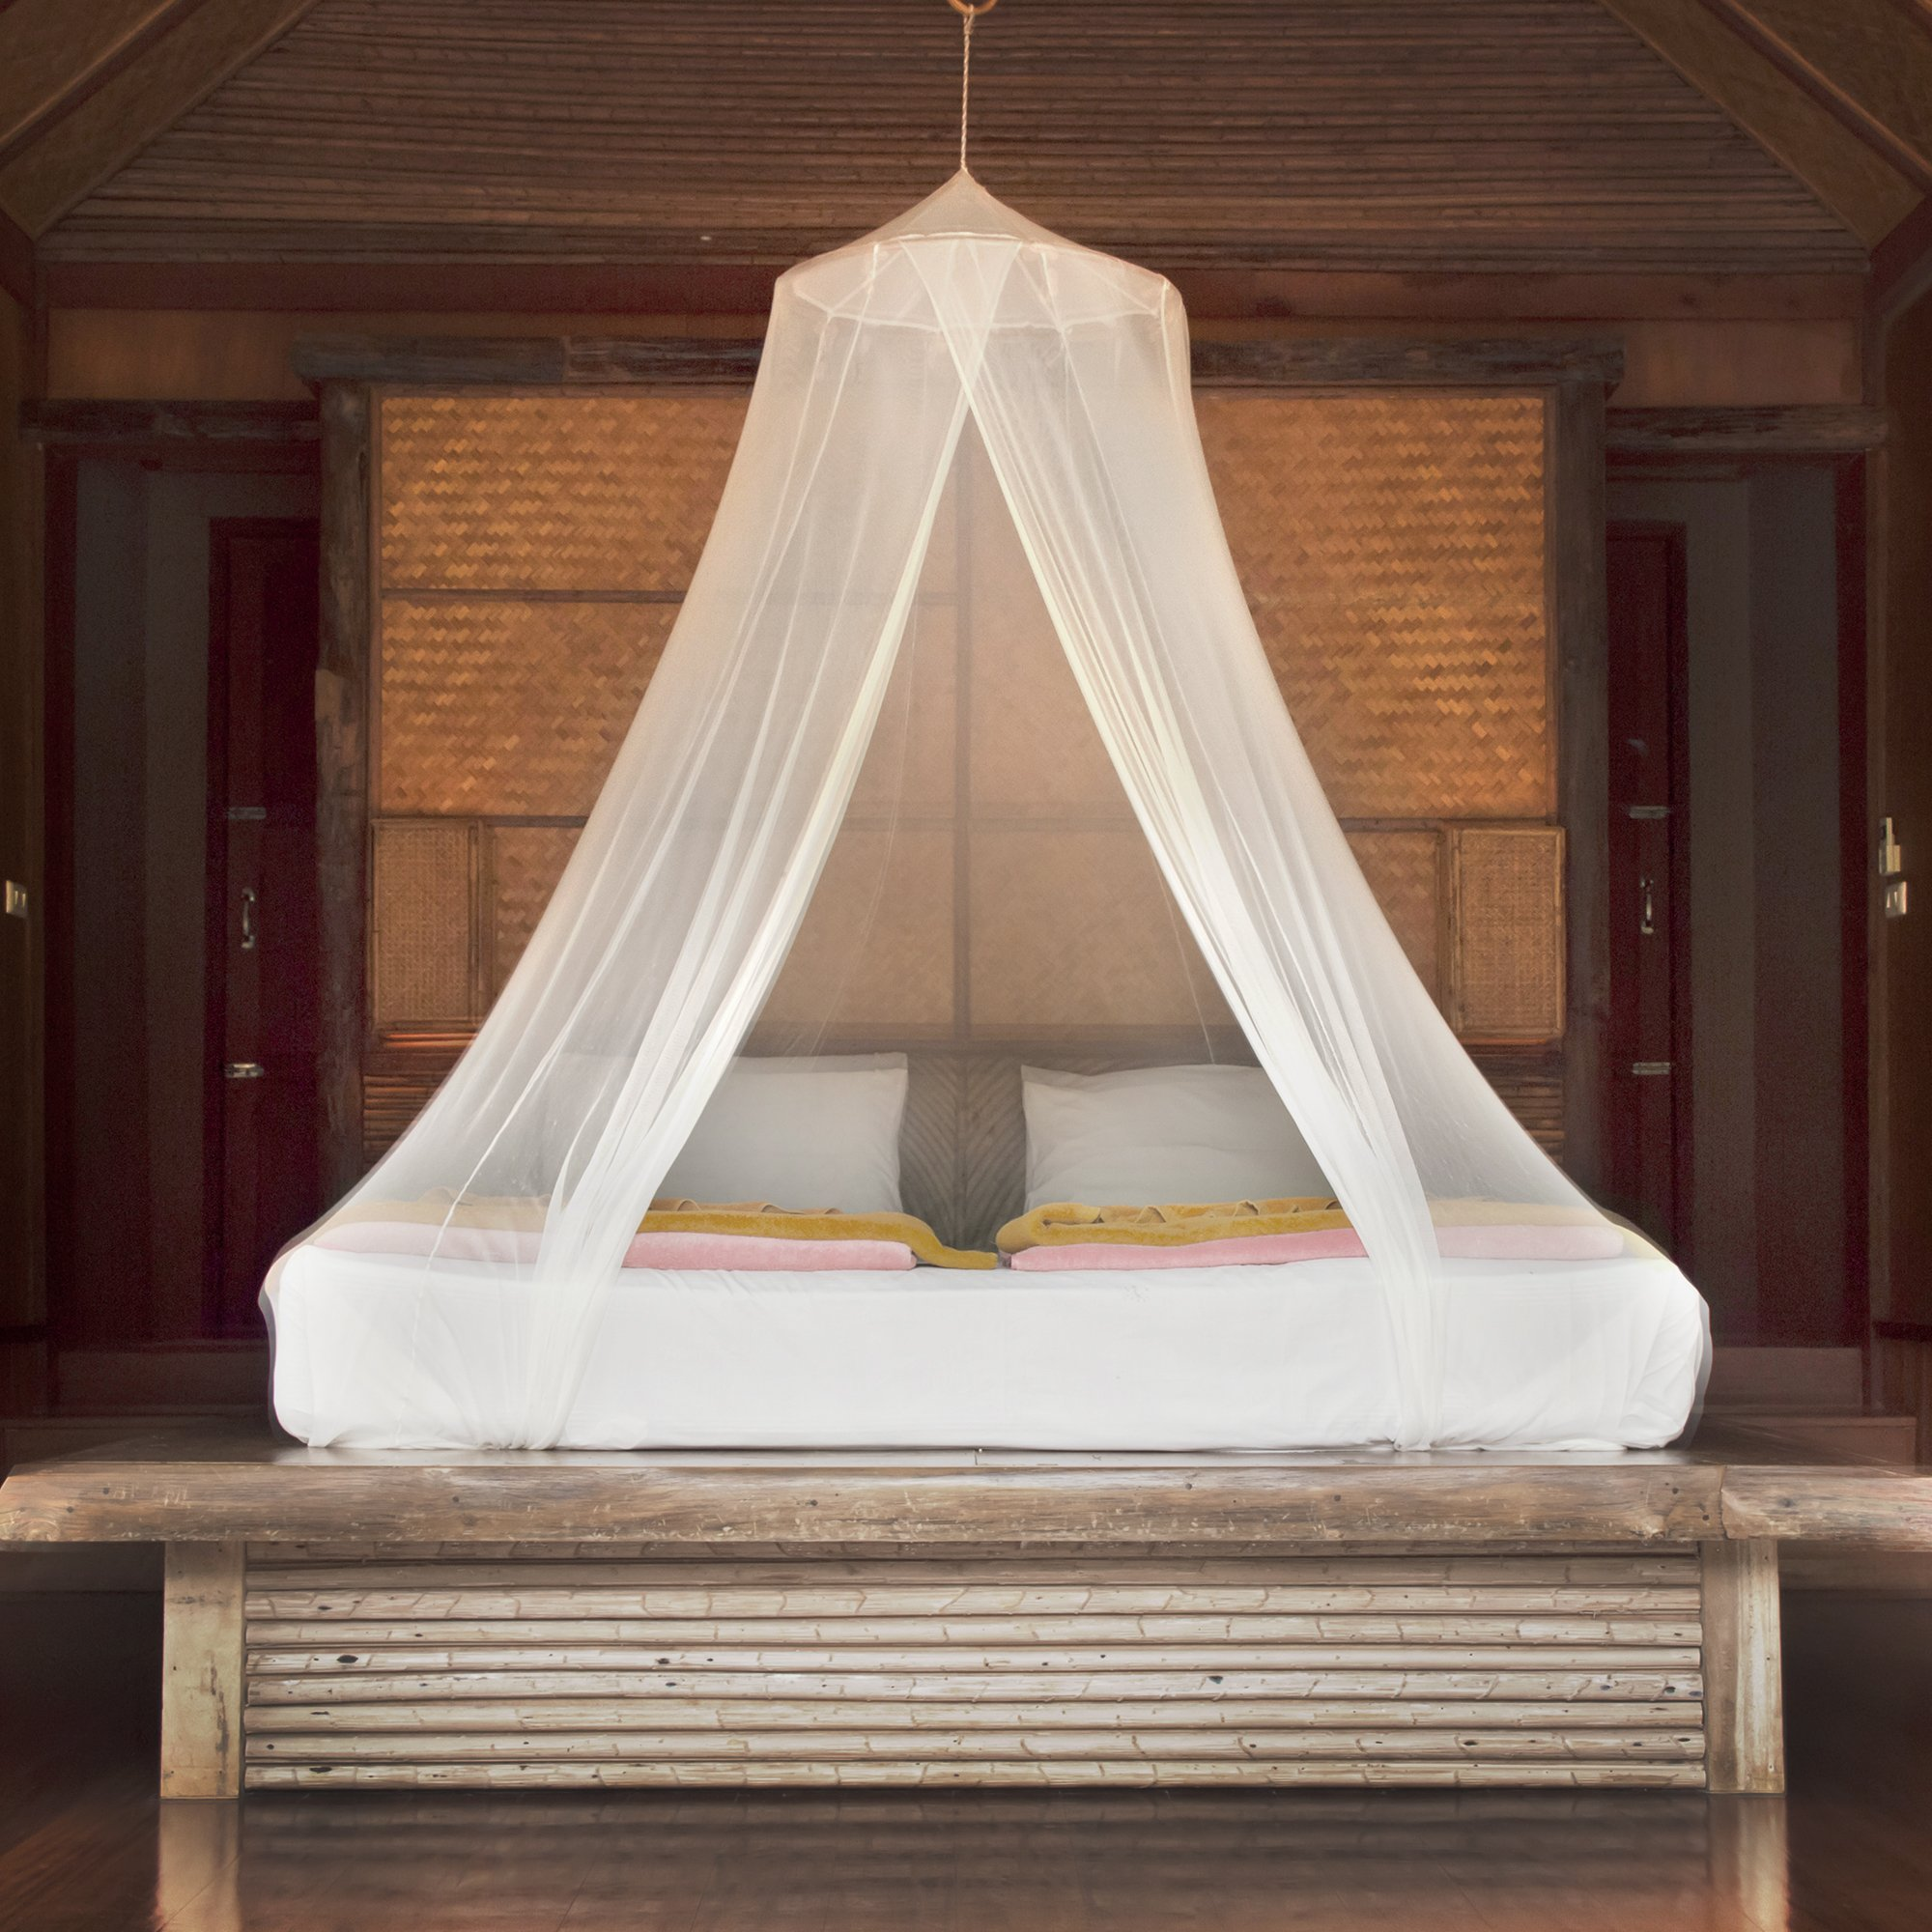 Mosquito Net for Girls Princess Canopy - White Dome Boho Bed & Crib Netting - Easy Hanging Kit and Travel Pouch